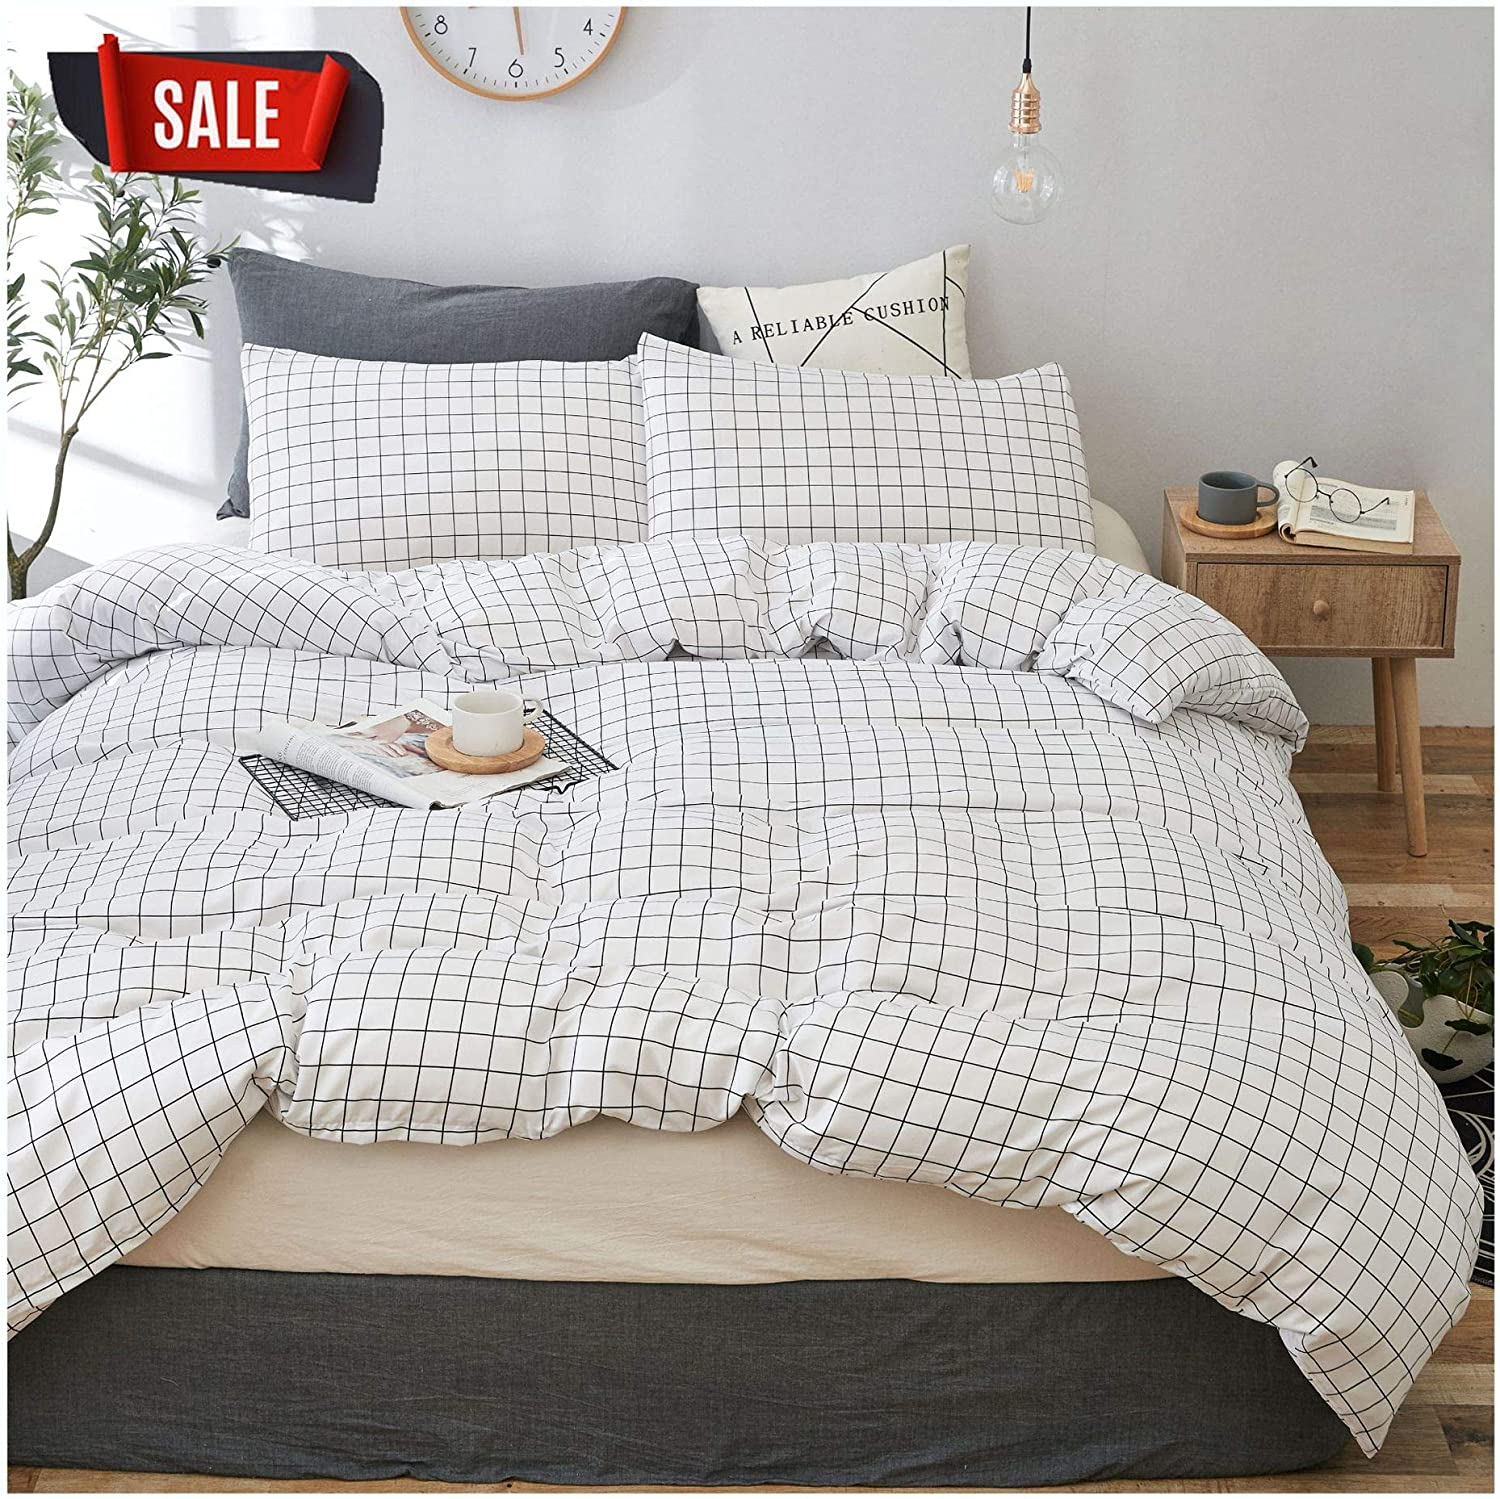 YZZ COLLECTION Kids Twin Bedding Duvet Cover Set,Premium Microfiber,Grid Pattern On Comforter Cover-3pcs:1x Duvet Cover 2X Pillowcases,Comforter Cover with Zipper Closure